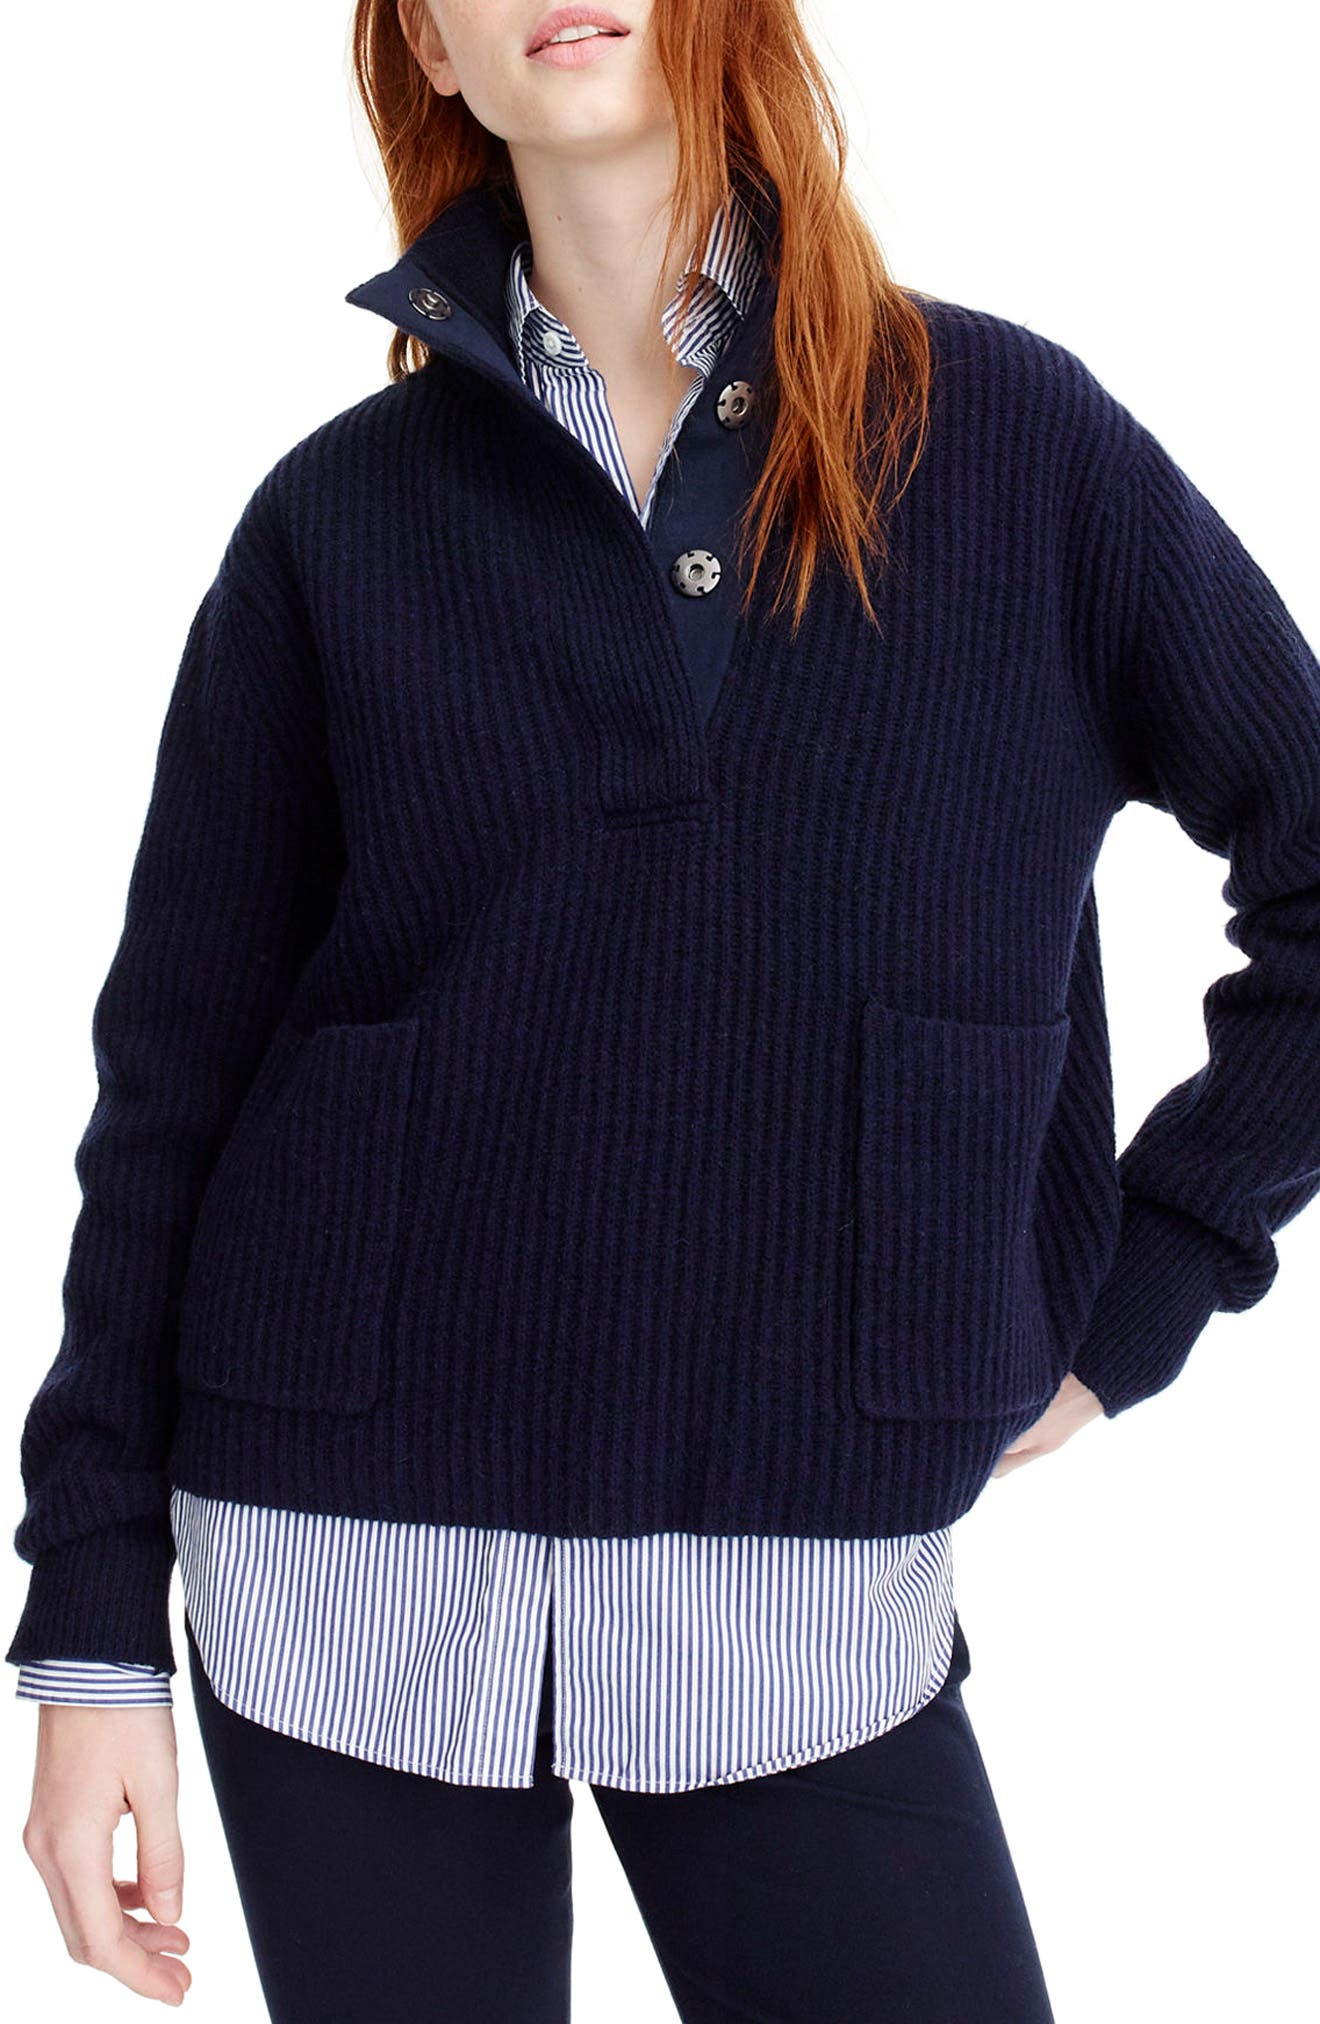 Kay Lambswool Pullover Sweater,                             Main thumbnail 1, color,